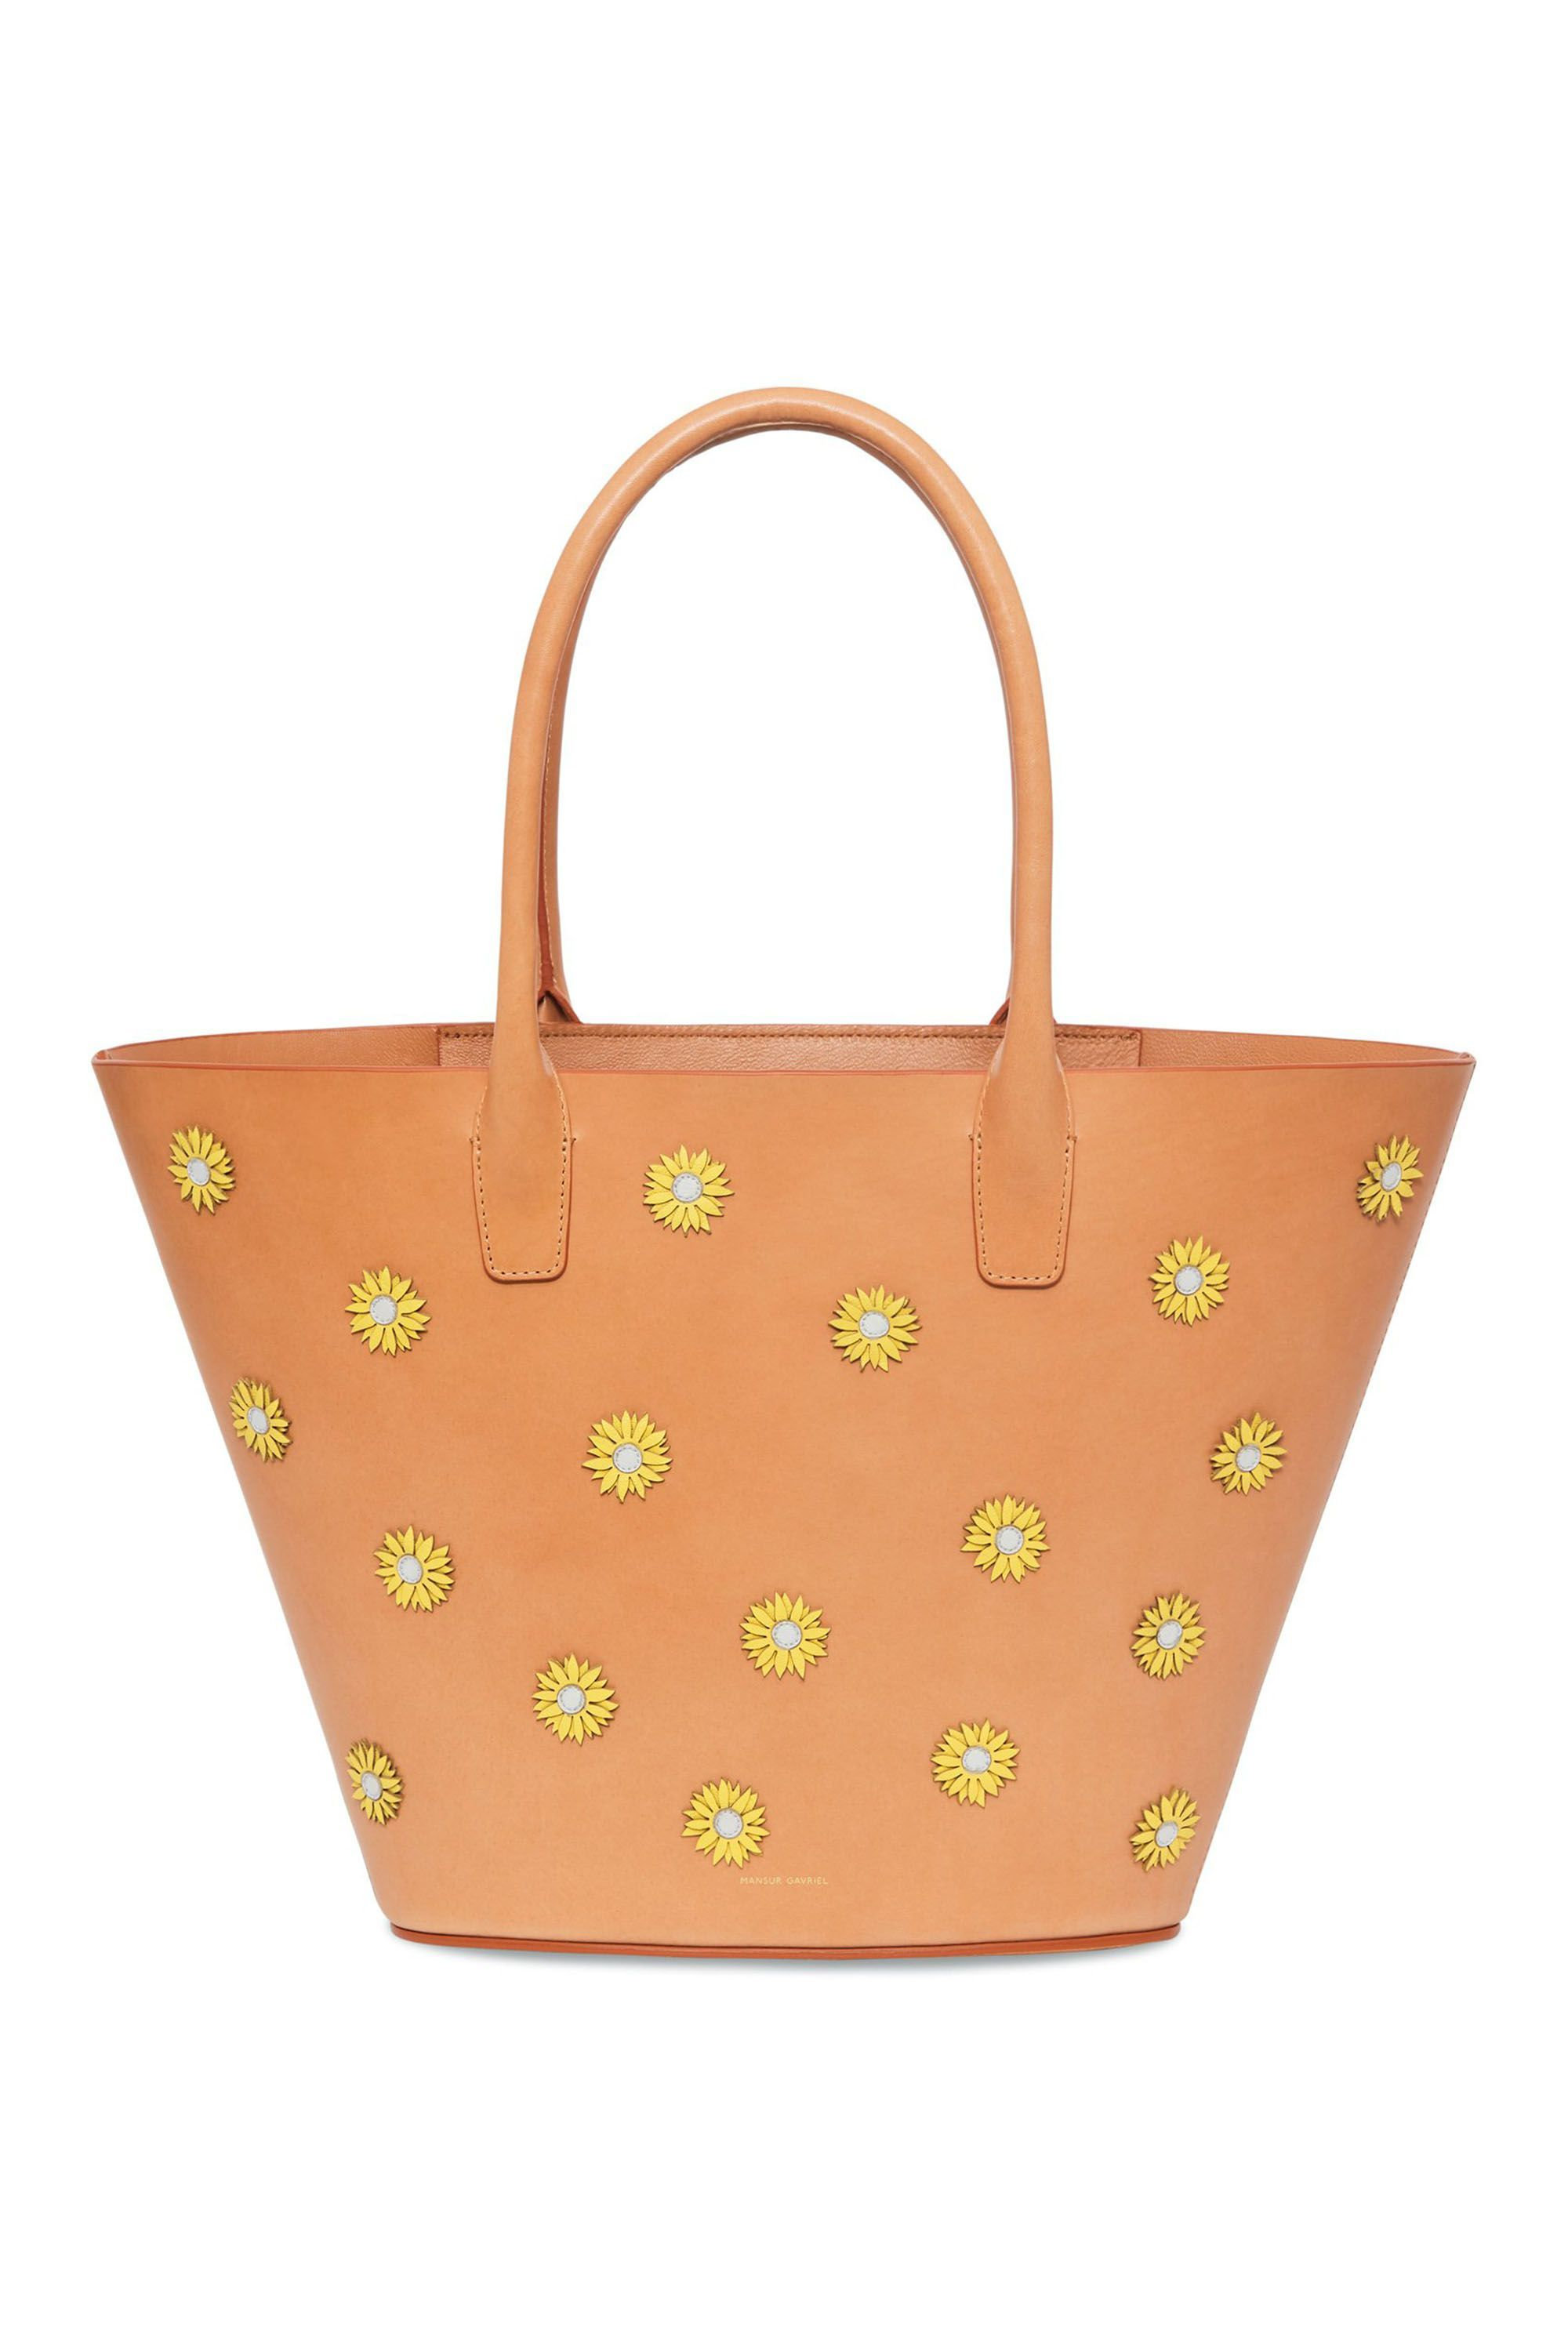 3751bff93fd6 15 Cute Designer Laptop Totes for Work - Best Laptop Tote Bags for Women